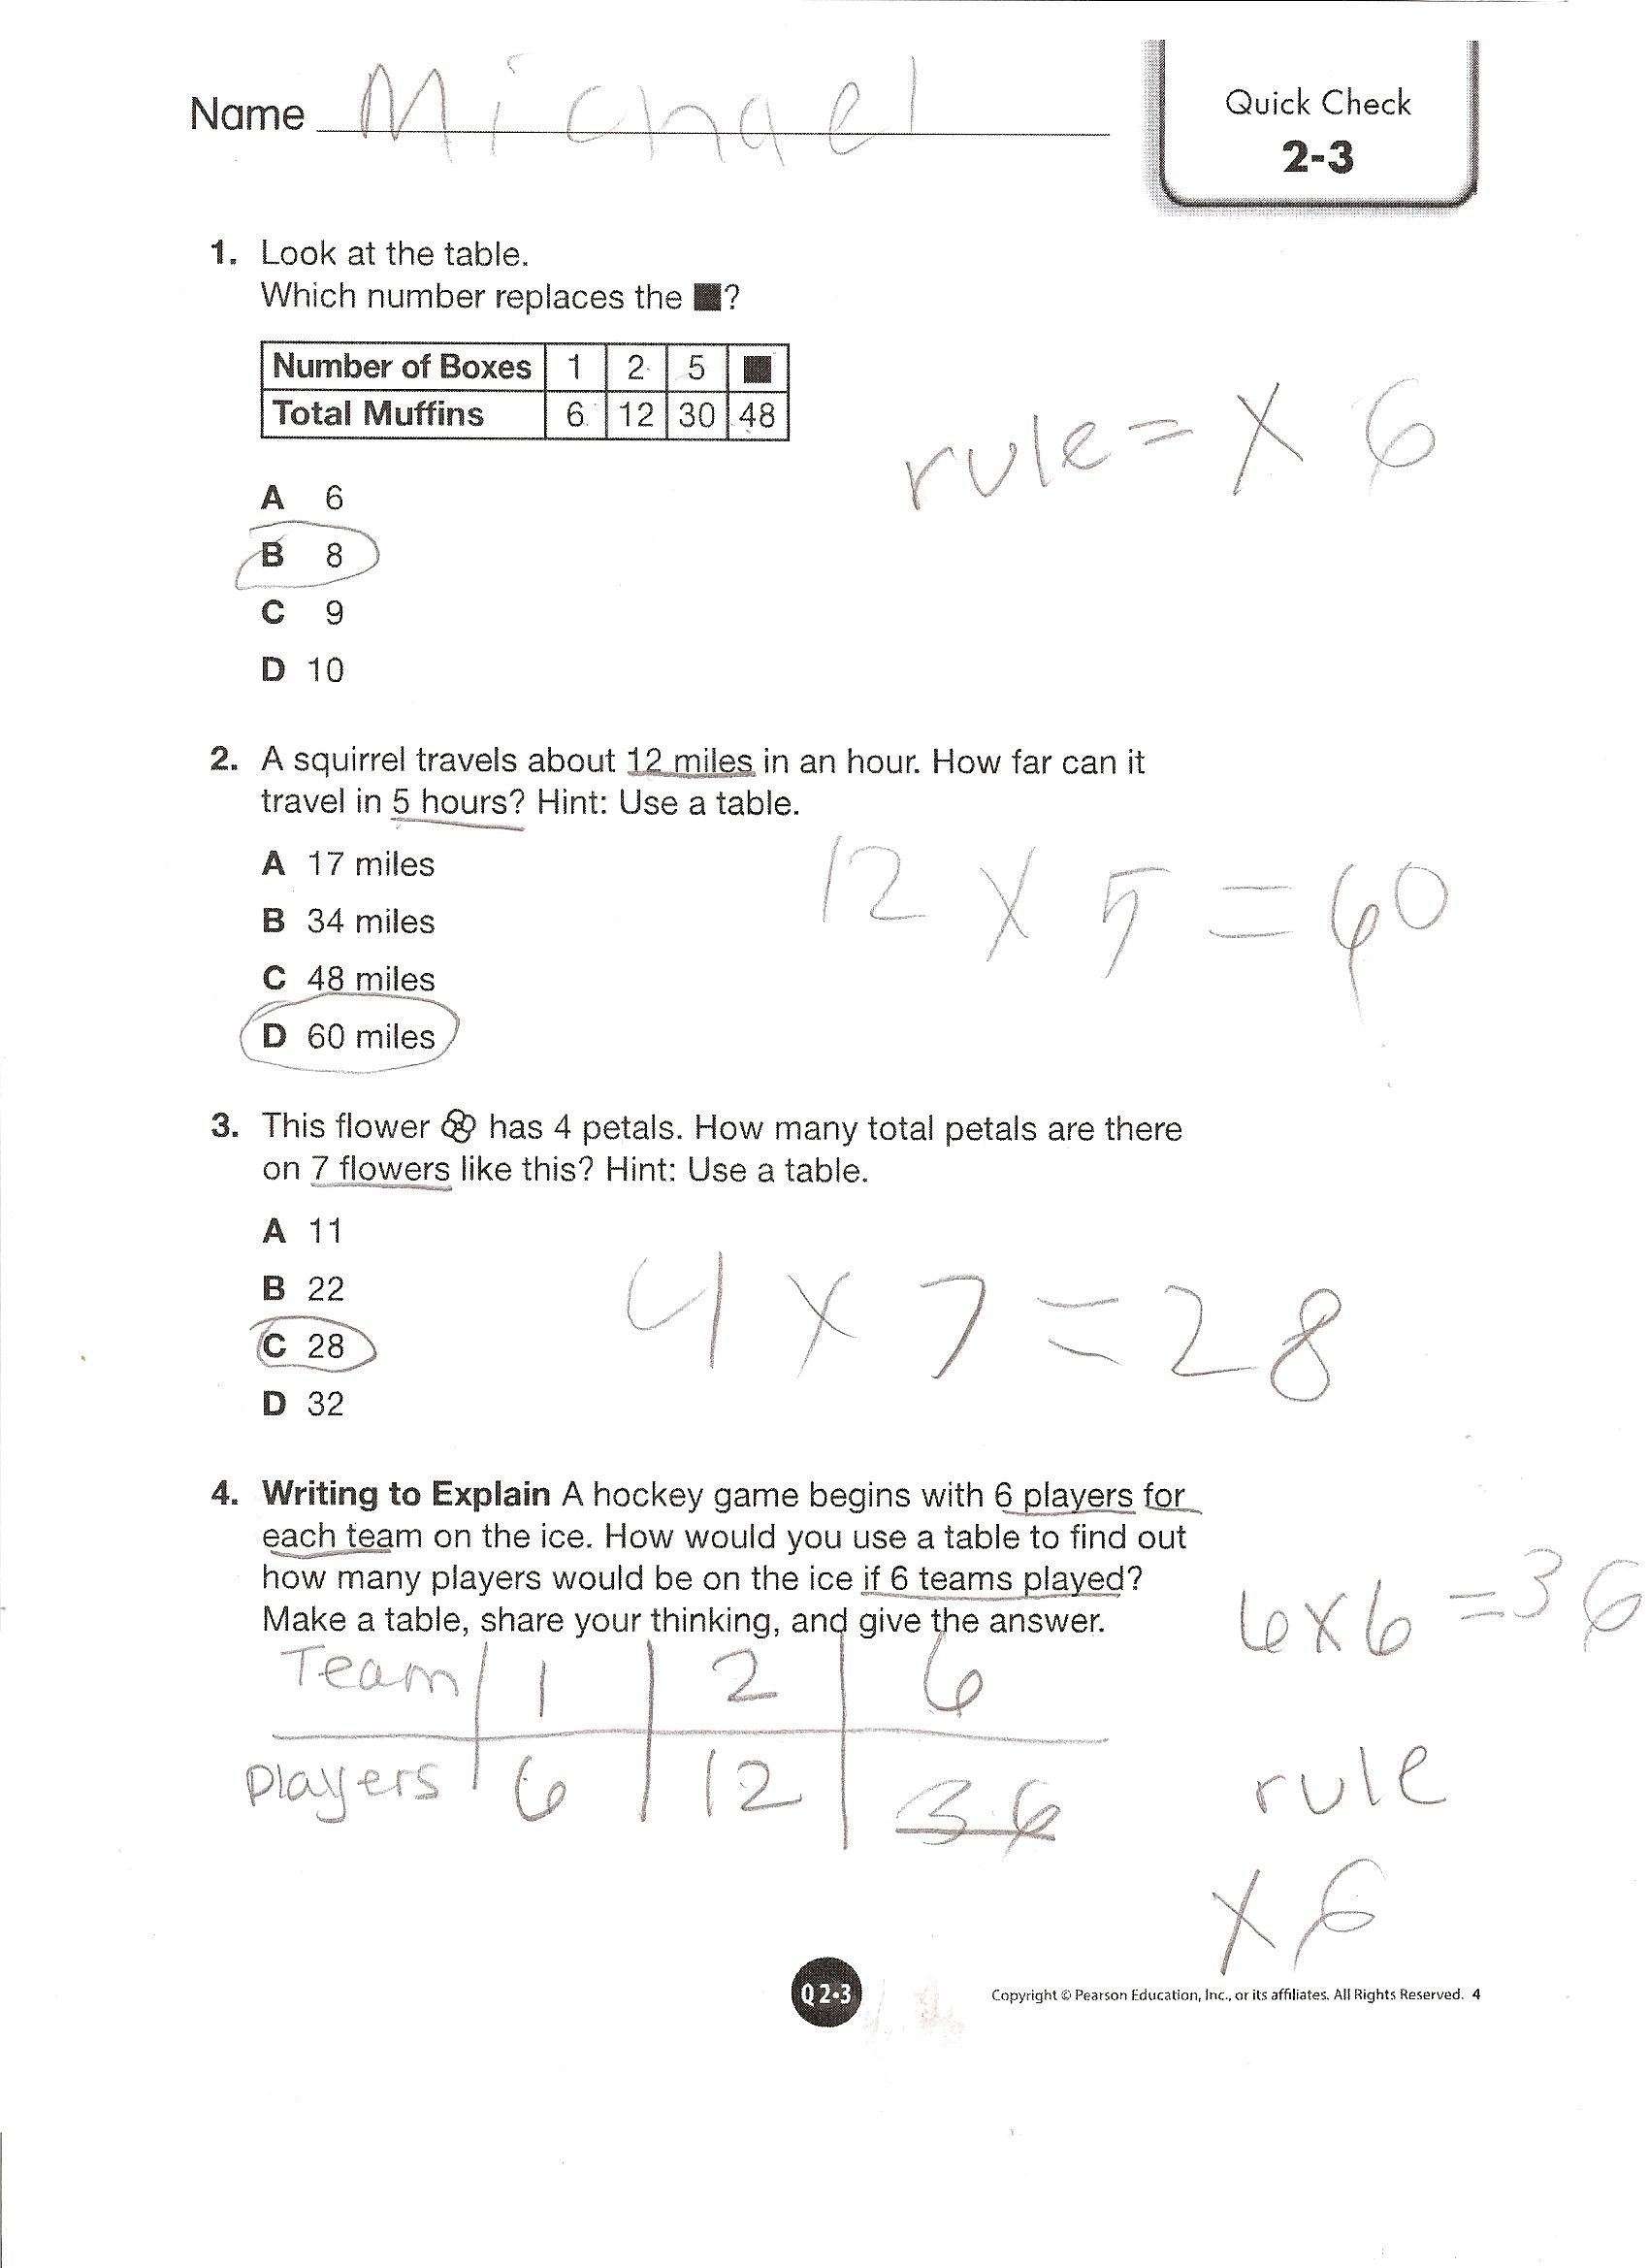 Worksheets 4th Grade Math Common Core Worksheets envision math grade 4 topic 2 3 quick check 4th check